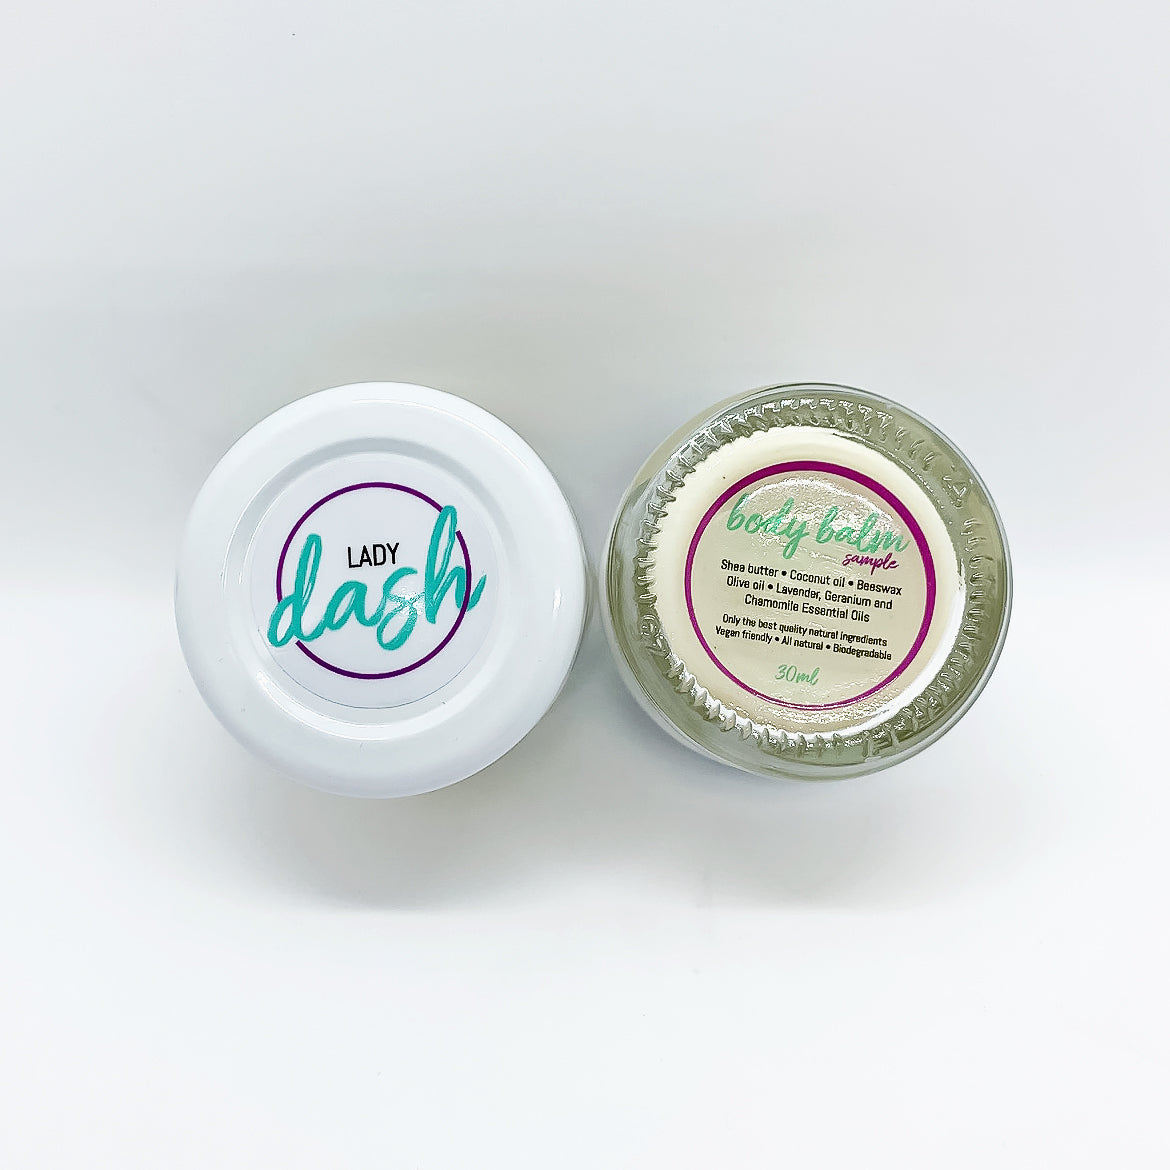 BODY BALM 30mls - Lady Dash